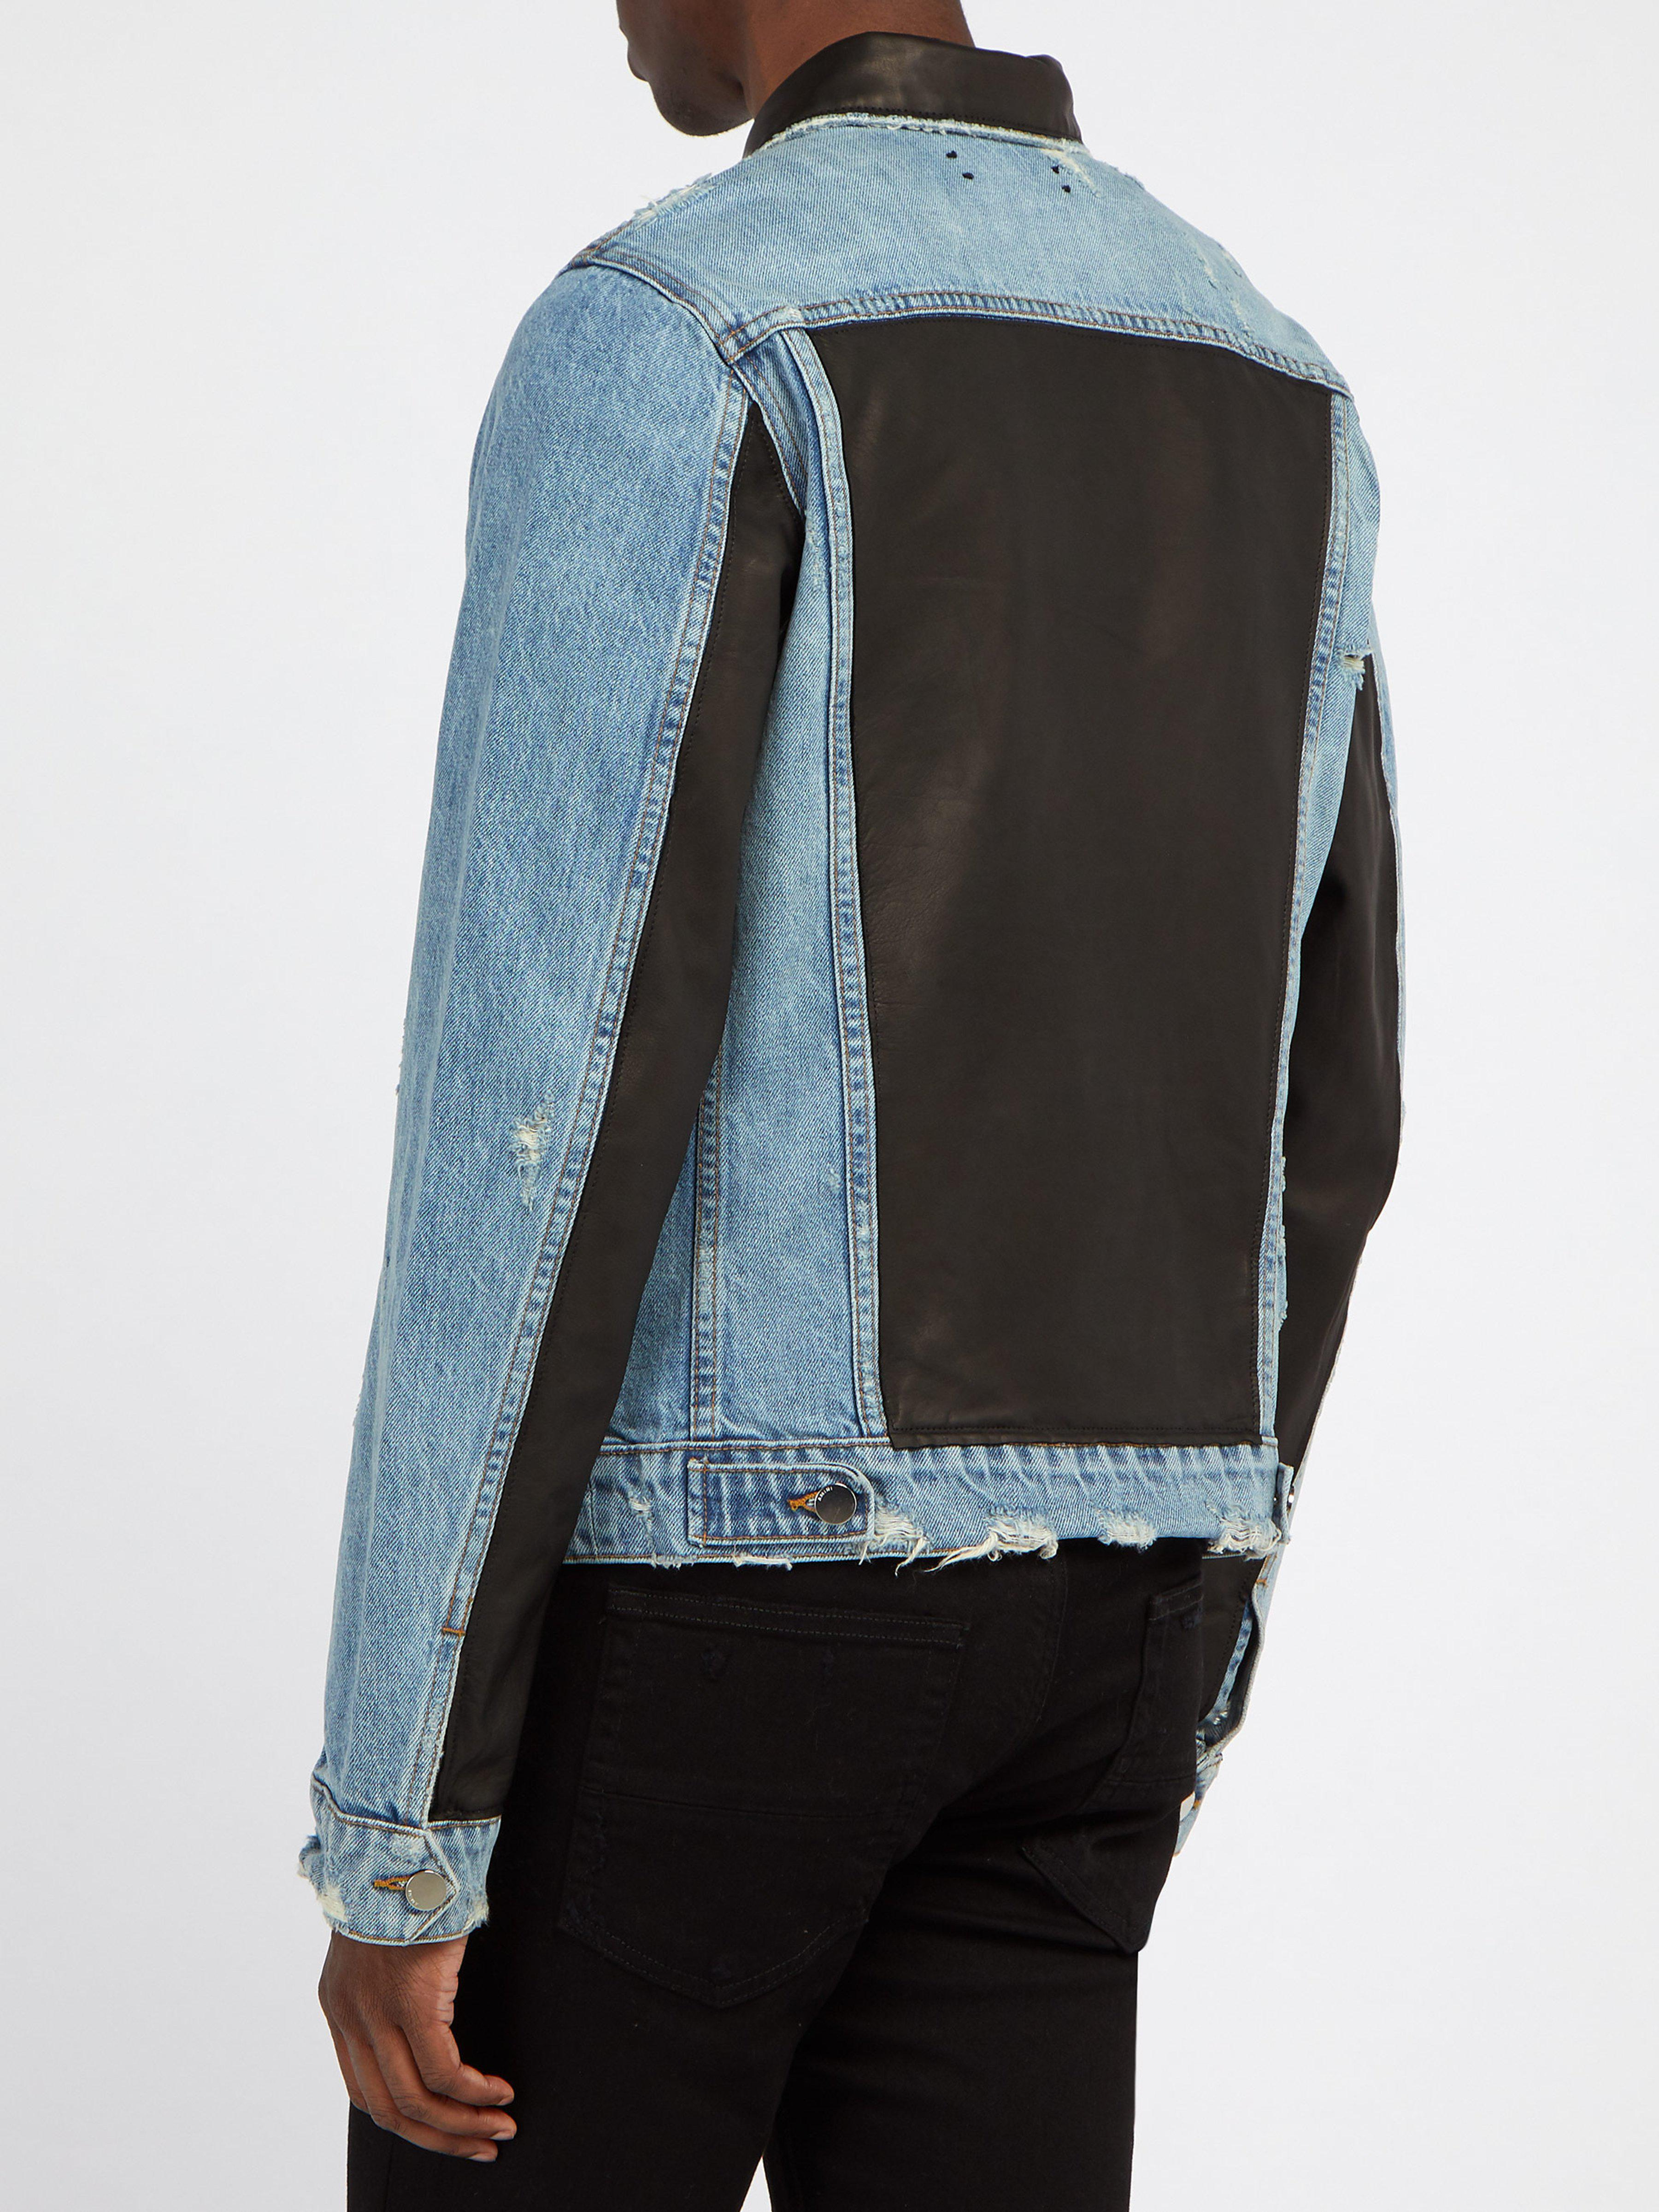 eac4cfaec Amiri Blue Leather Panelled Denim Jacket for men